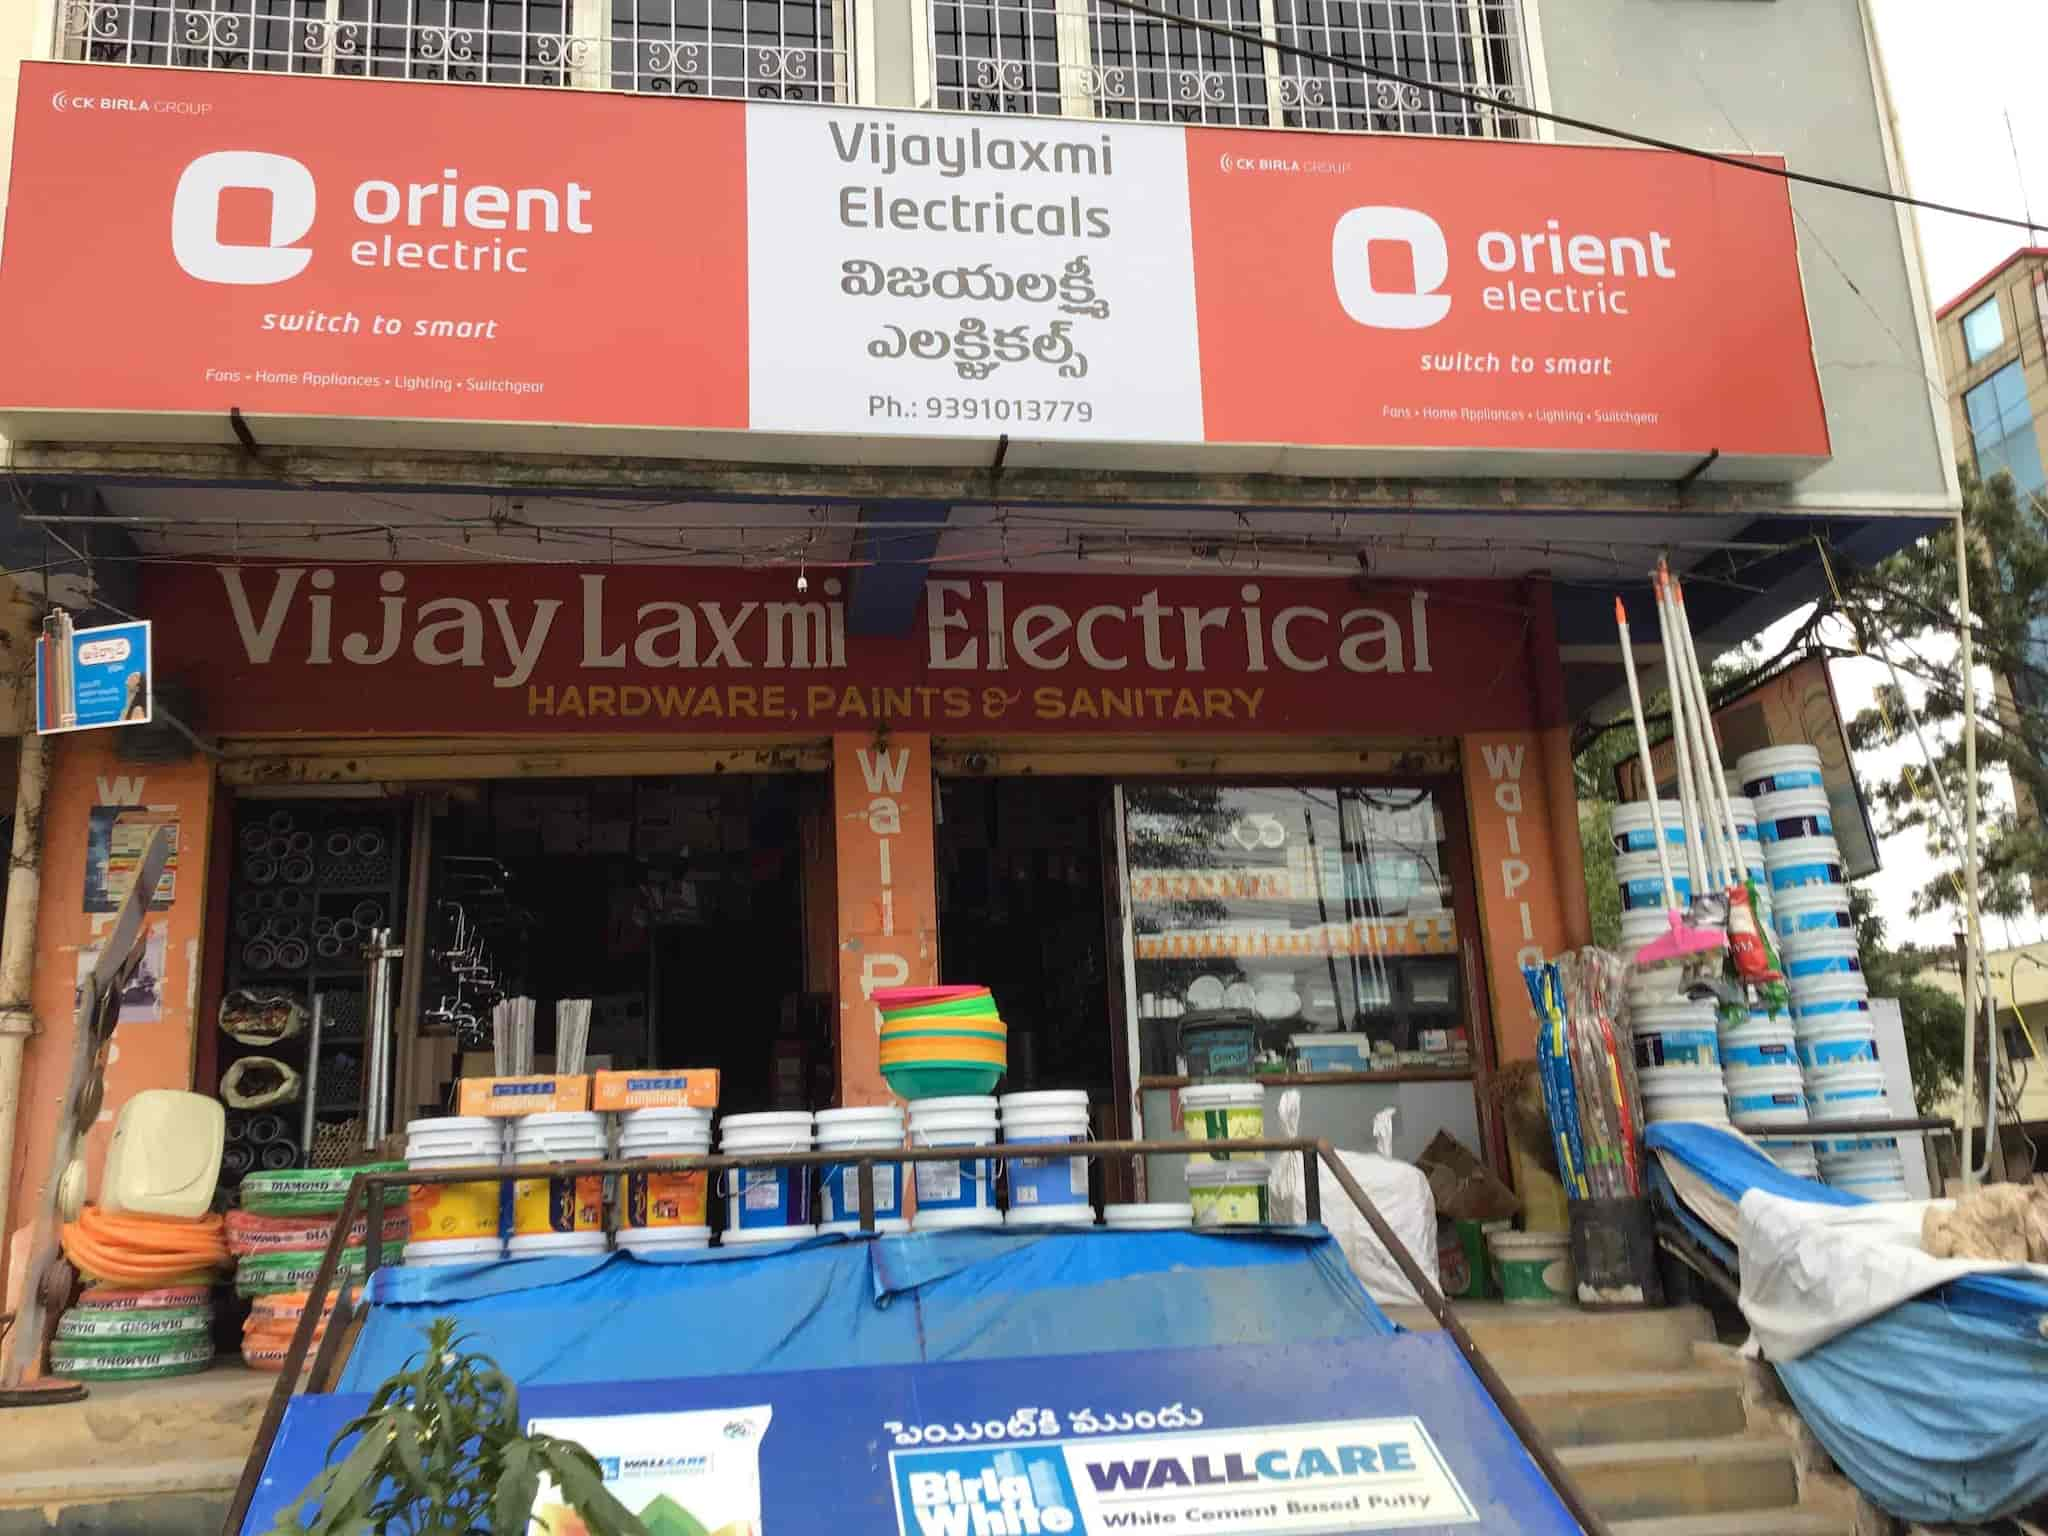 Vijaya Laxmi Electrical Hardware Paints Sanitary Photos, Kompally